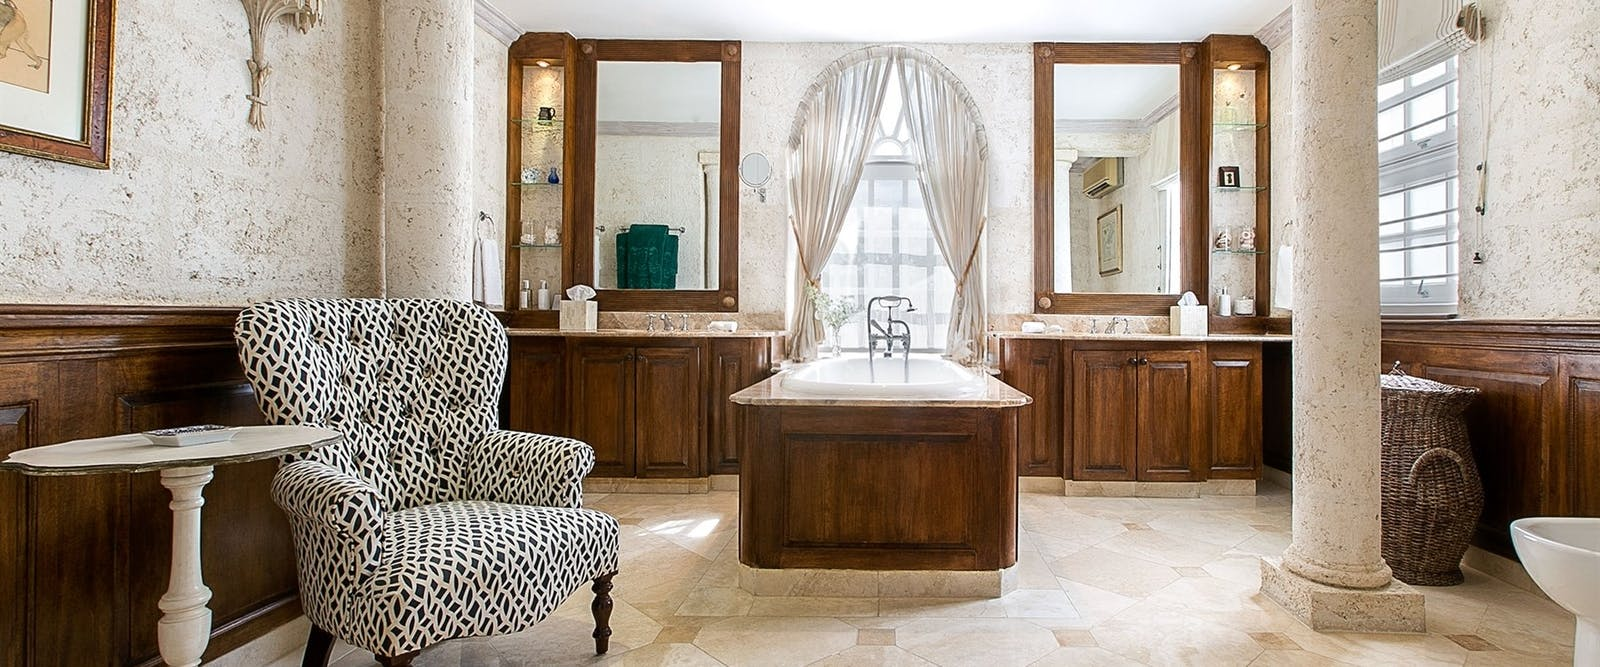 Luxury Plantation Suite Bathroom at Coral Reef Club, Barbados